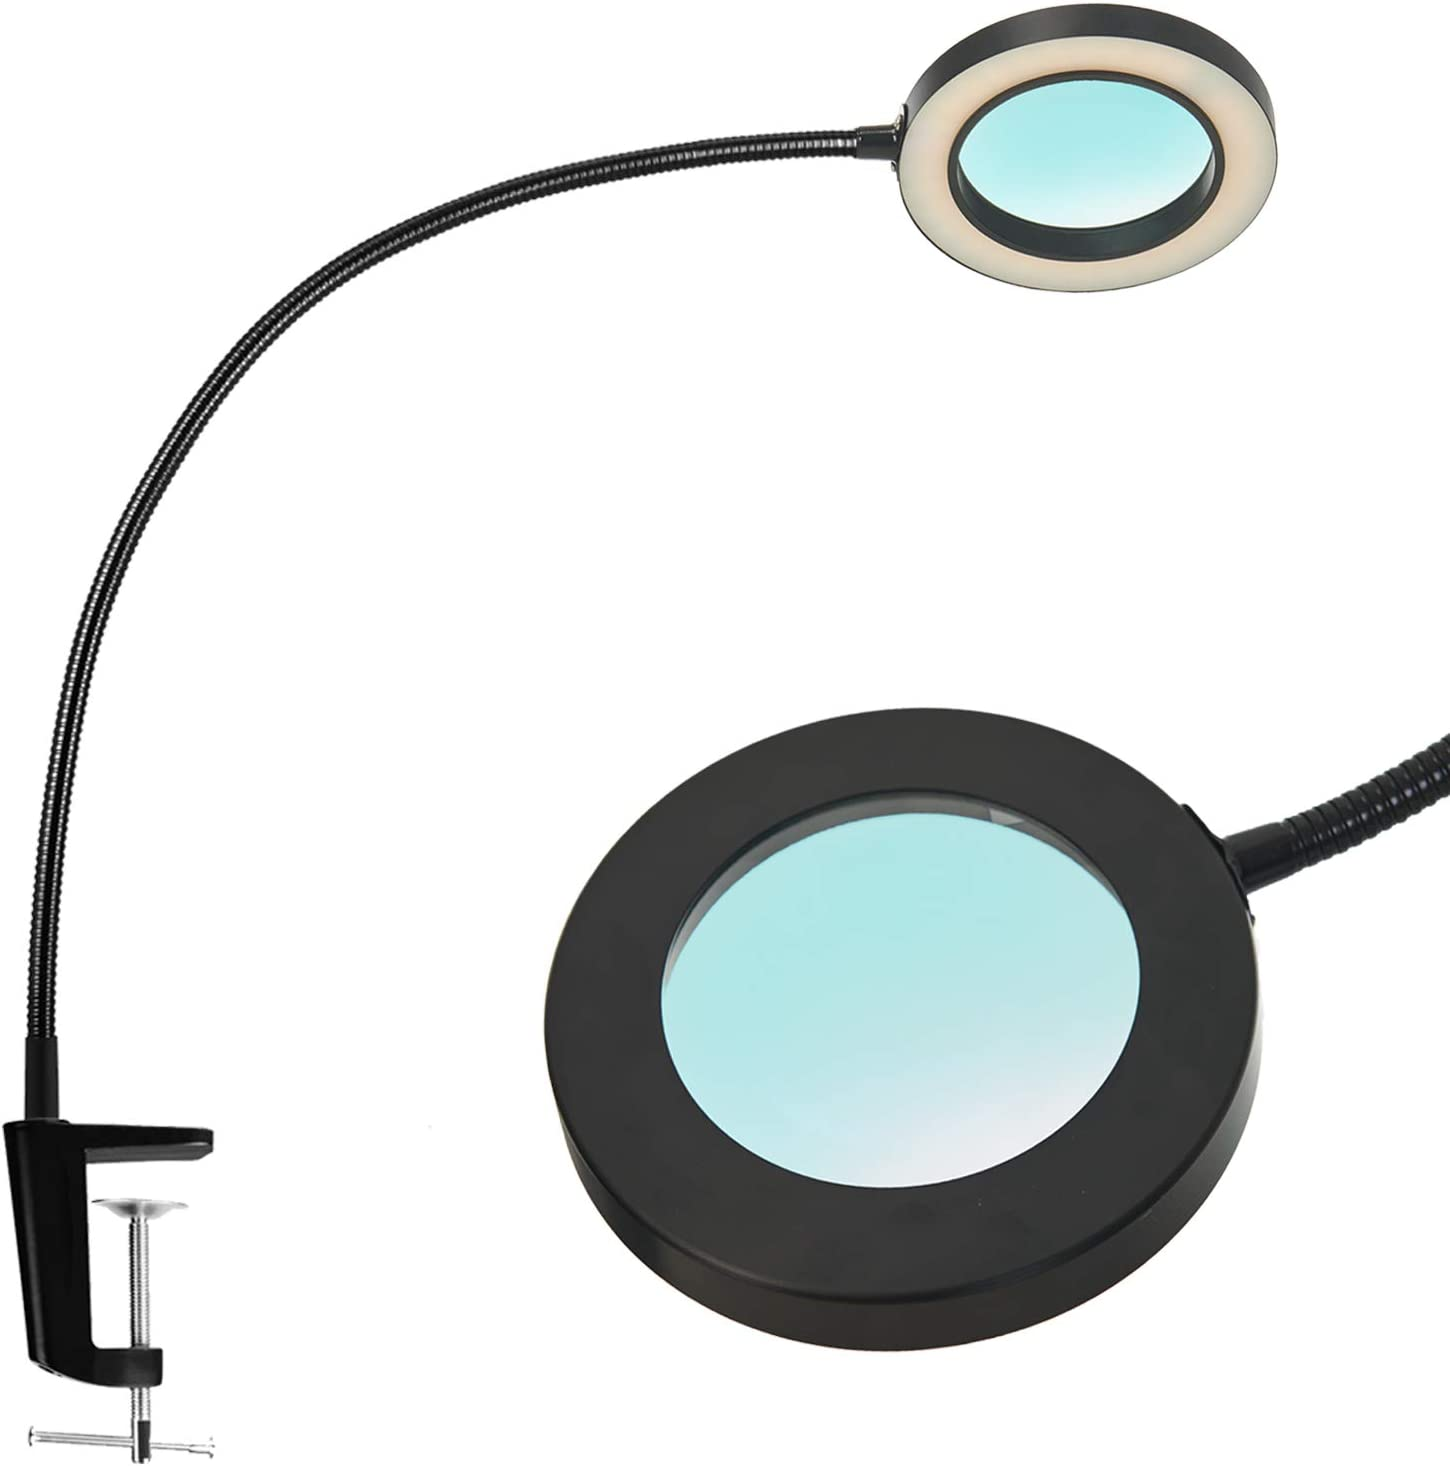 Psiven LED Magnifying Lamp with Clamp, Dimmable Magnifying Glass Desk Lamp with 19.7'' Gooseneck (3 Color Modes, 10W, 4.1' Glass Lens, 5 Diopter) Adjustable LED Light for Close Work, Reading, Crafts